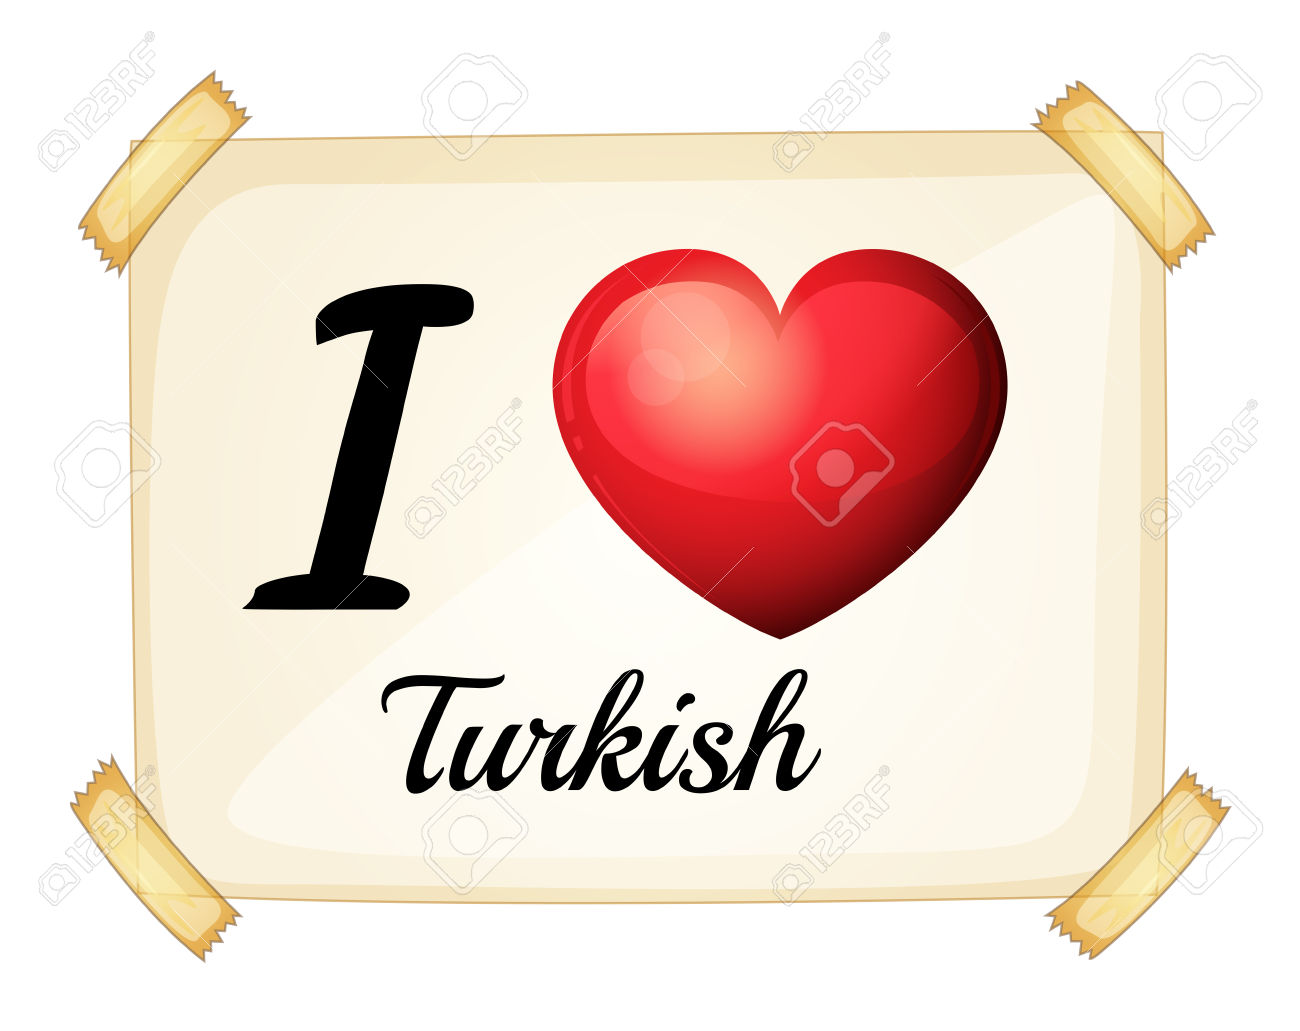 I Love Turkish Posted On The Wall Royalty Free Cliparts, Vectors.